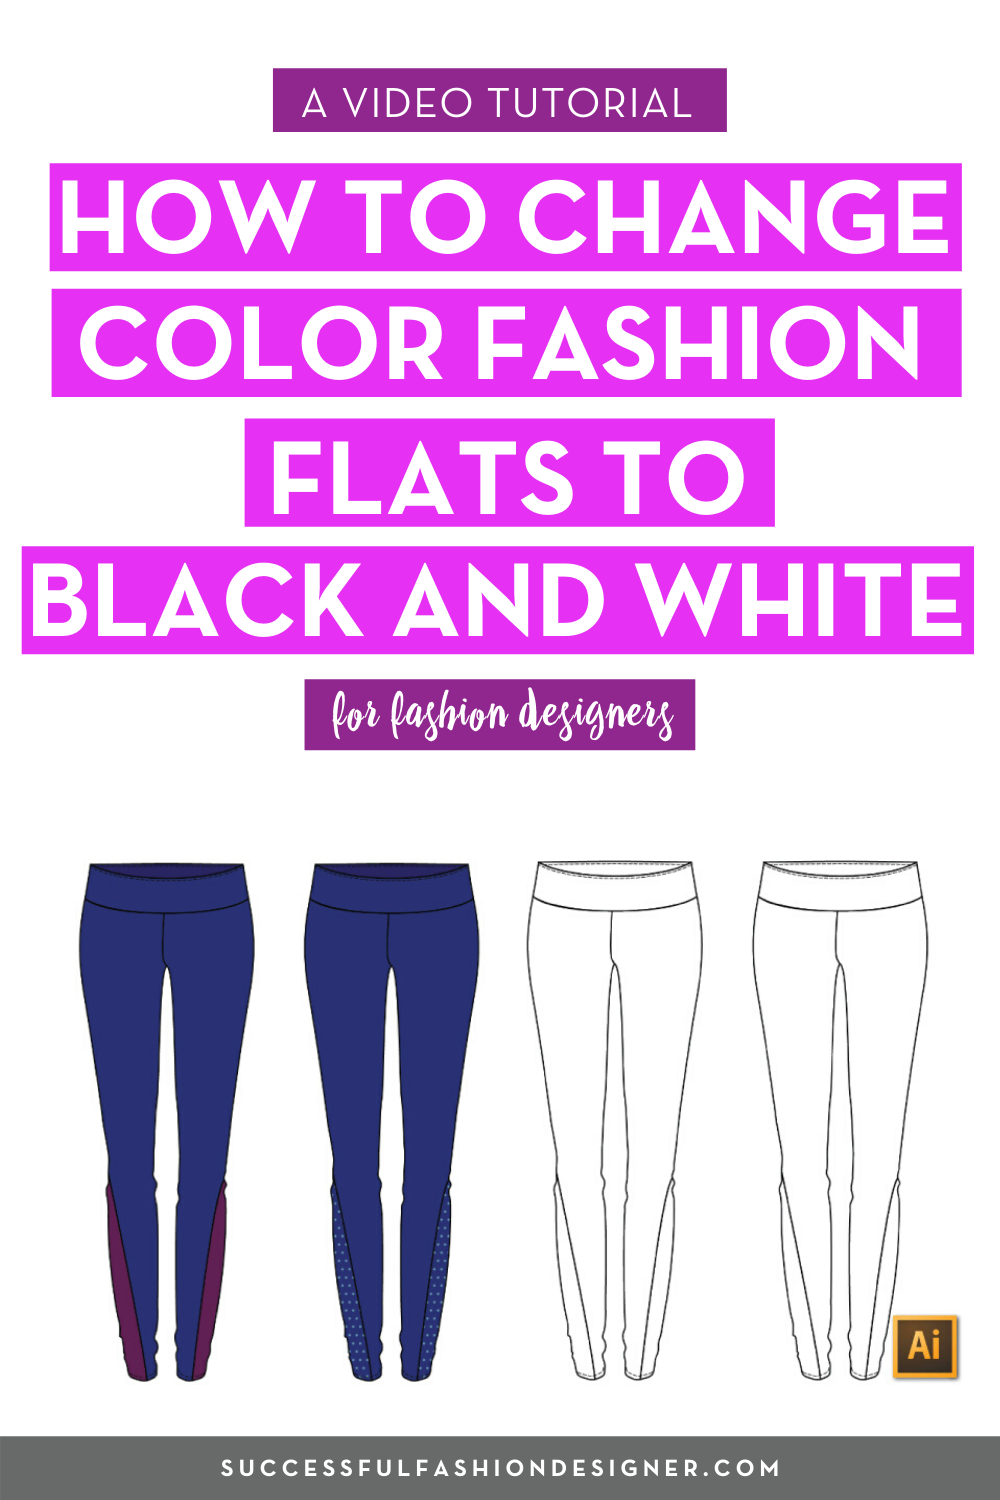 Change Color Fashion Flats To Black And White In Illustrator Courses Free Tutorials On Adobe Illustrator Tech Packs Freelancing For Fashion Designers Fashion Design Jobs Fashion Inspiration Design